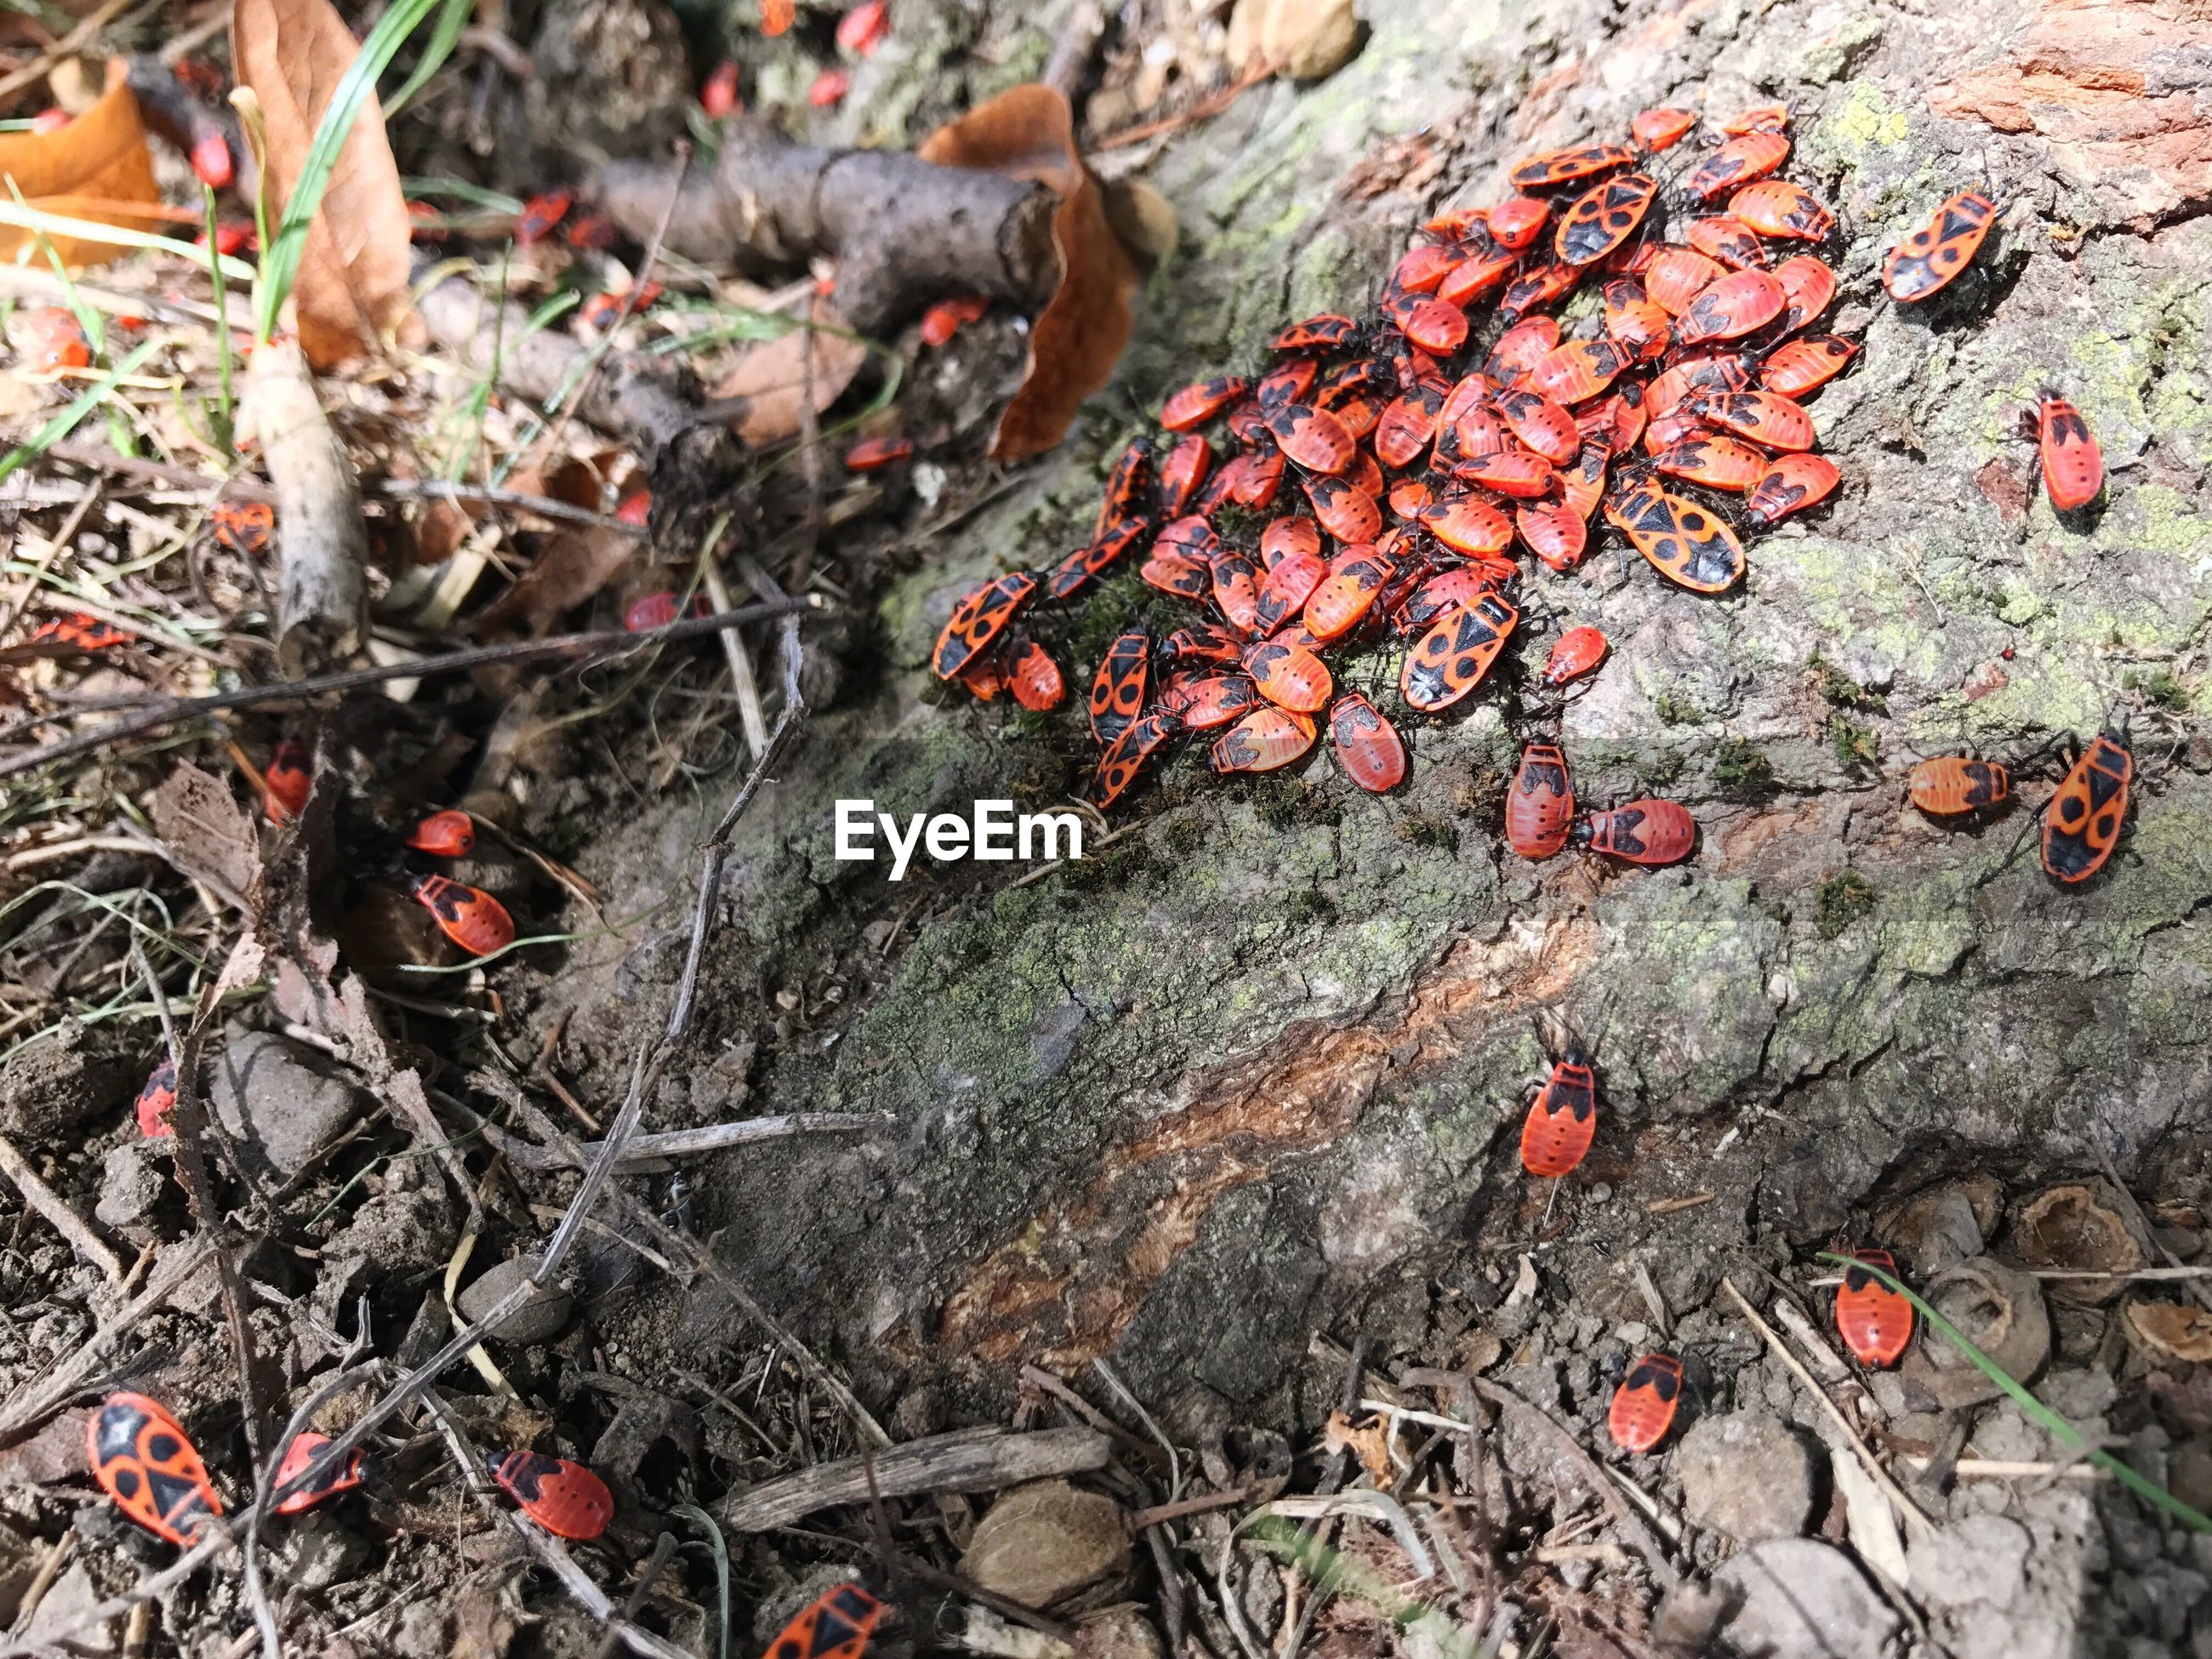 Close-up of bugs on tree root